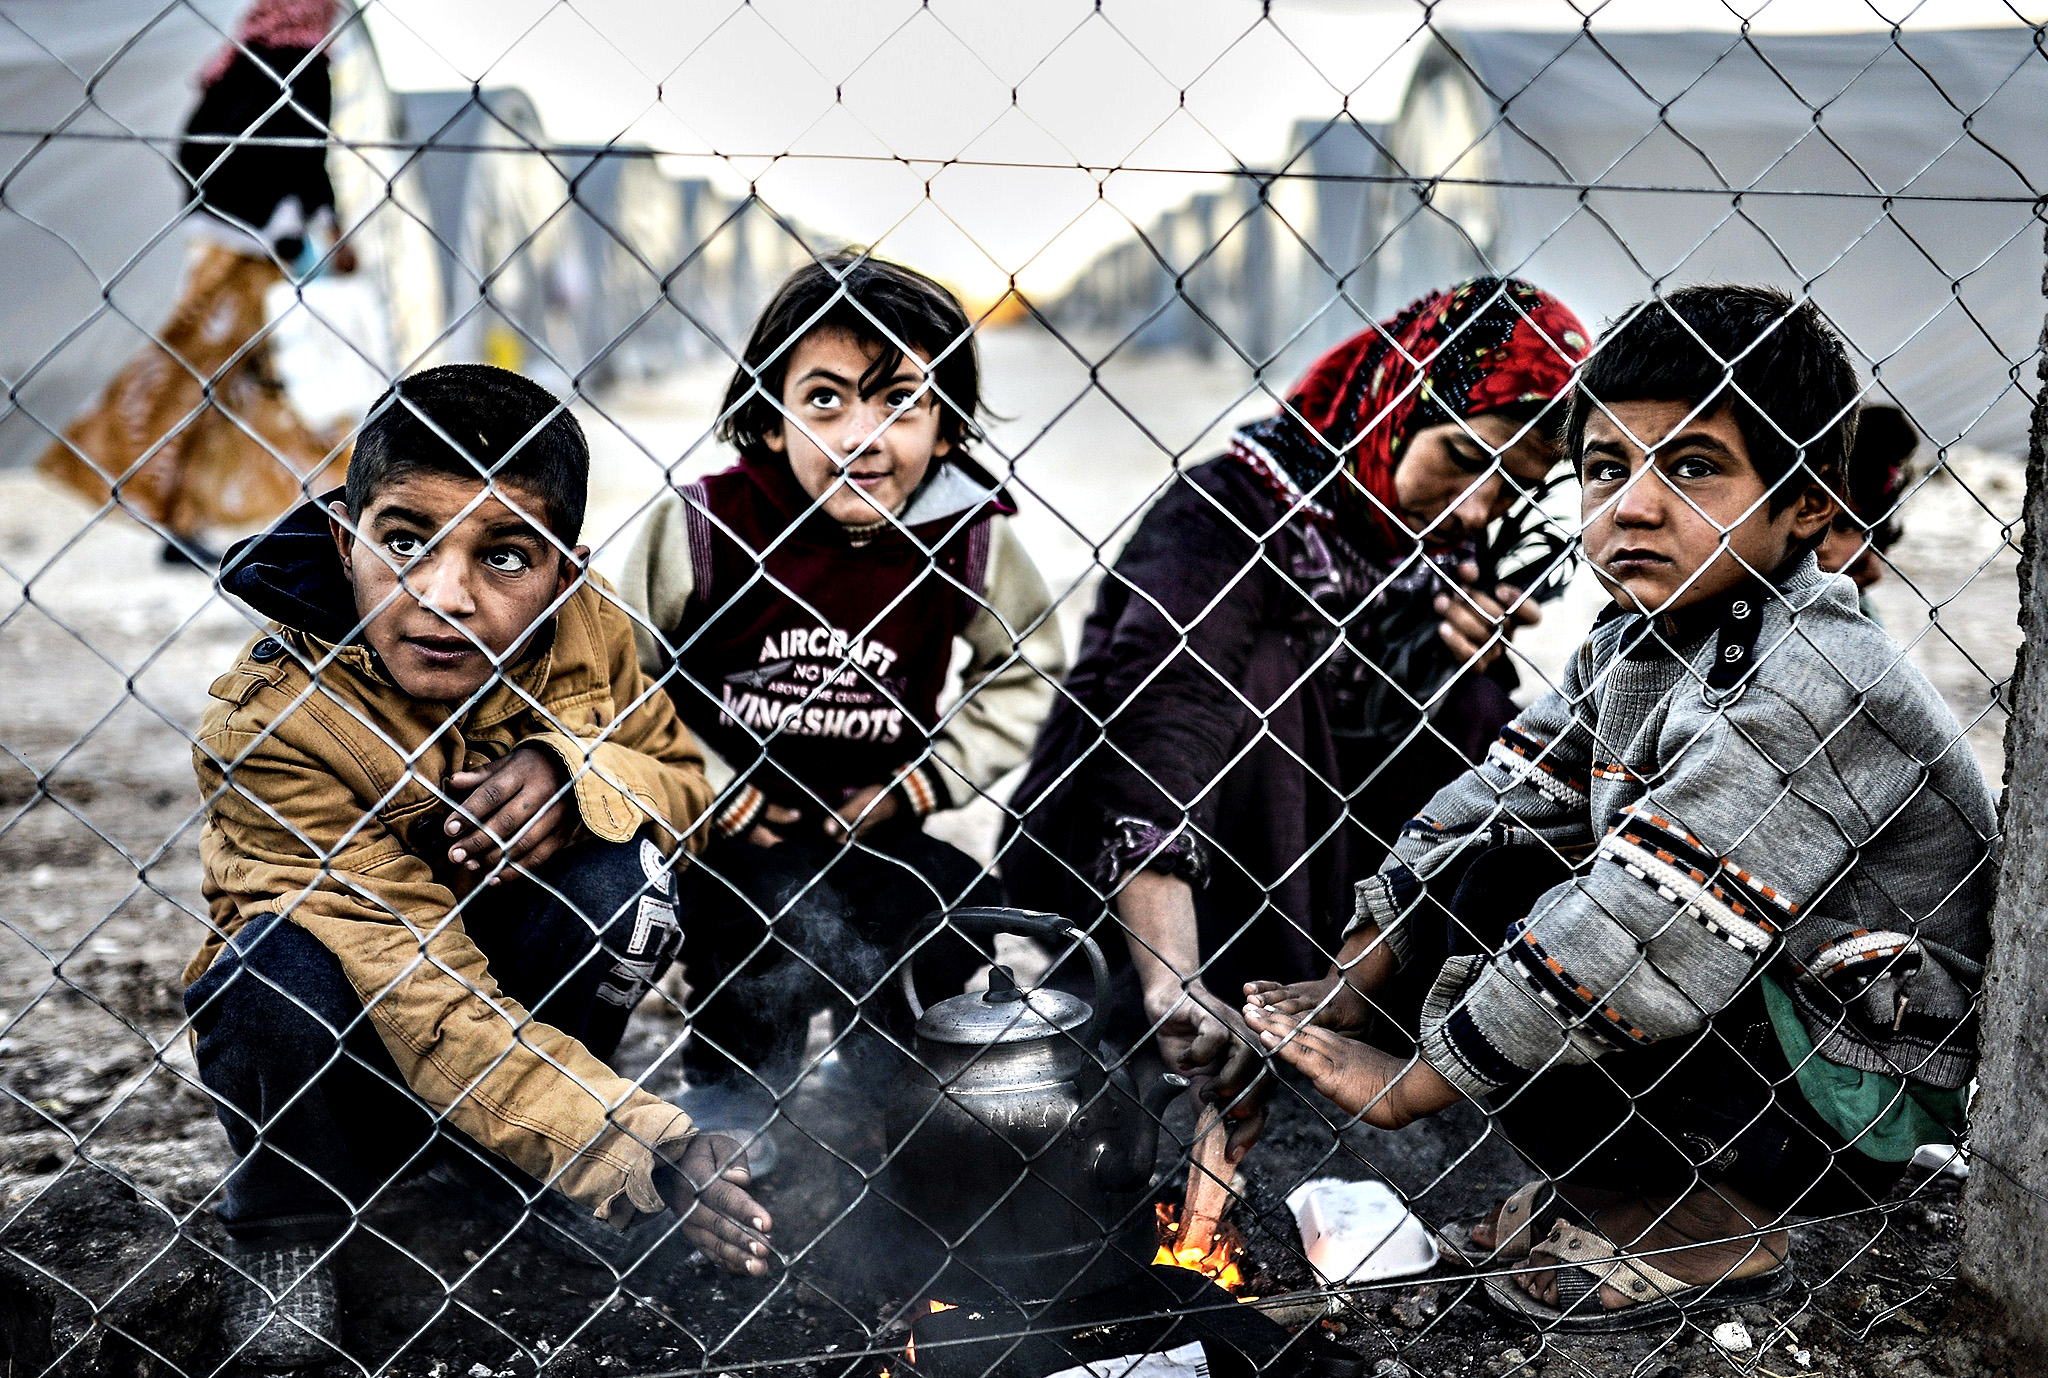 Syrian Kurdish woman and her children gather around a fire early in the morning in a refugee camp at Suruc, in the Sanliurfa province, on October 21, 2014. Turkey dropped its refusal to allow Kurdish fighters over the border to defend the besieged Syrian town of Kobane, saying it was now helping Iraqi peshmerga to cross the frontier in a major policy shift.